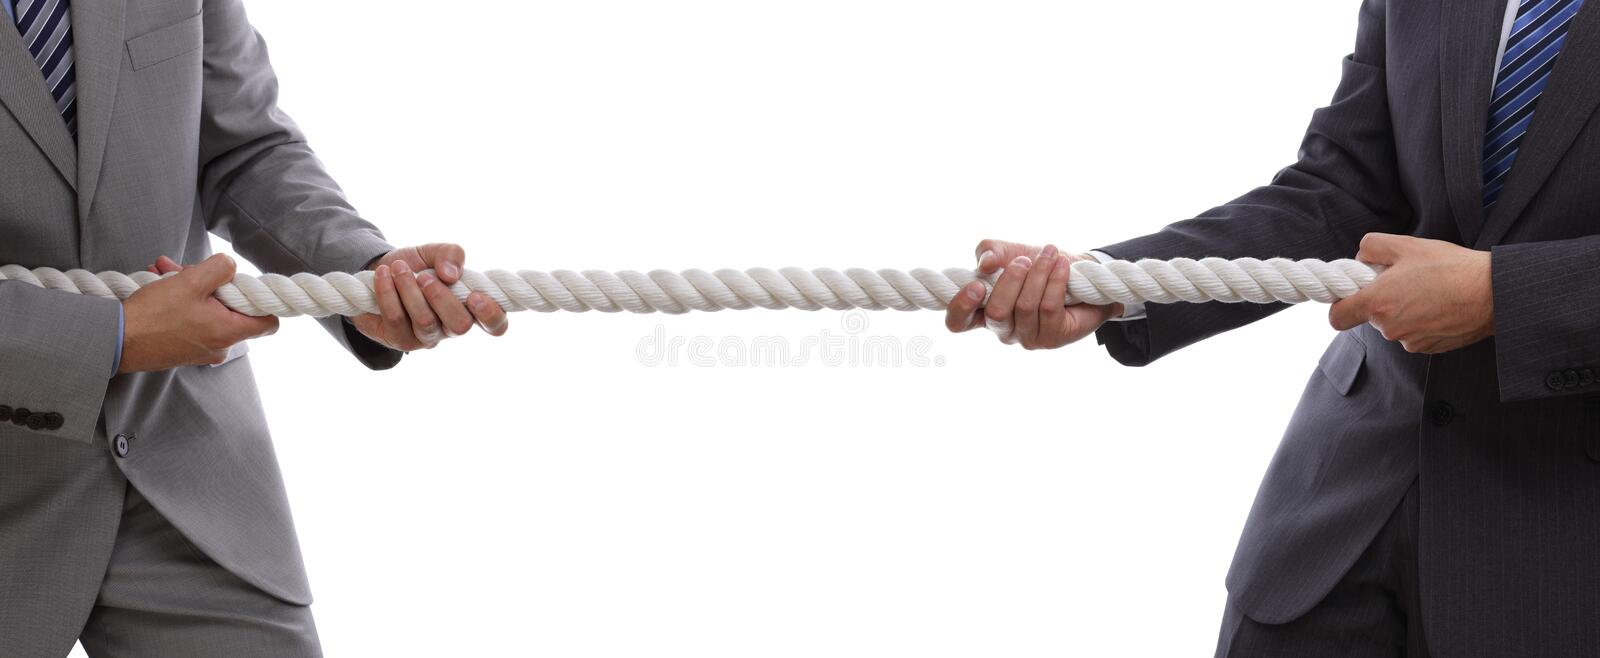 Business competition tug of war stock photography